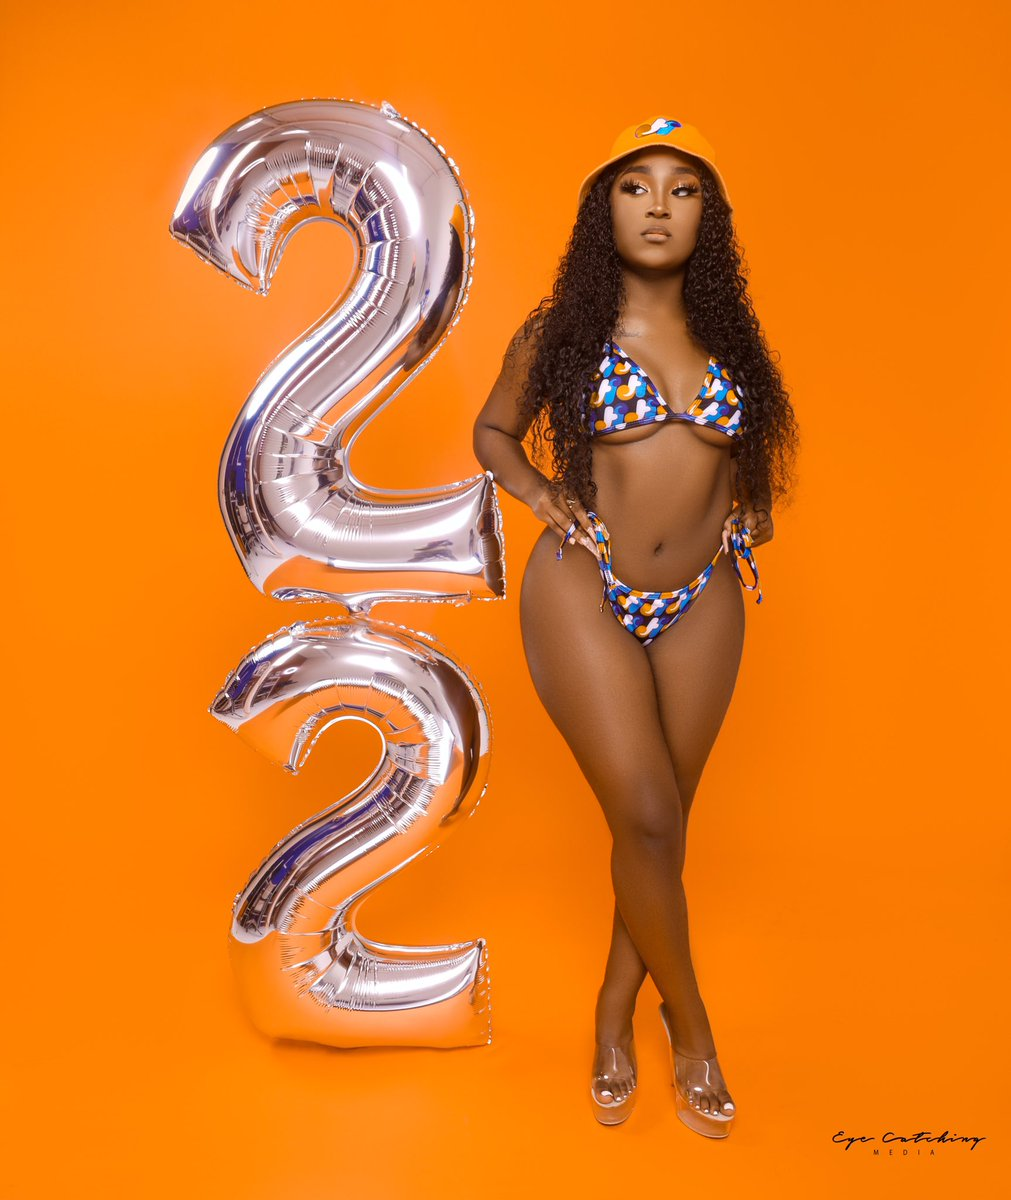 it's a real bitch's birthday 😘 #22